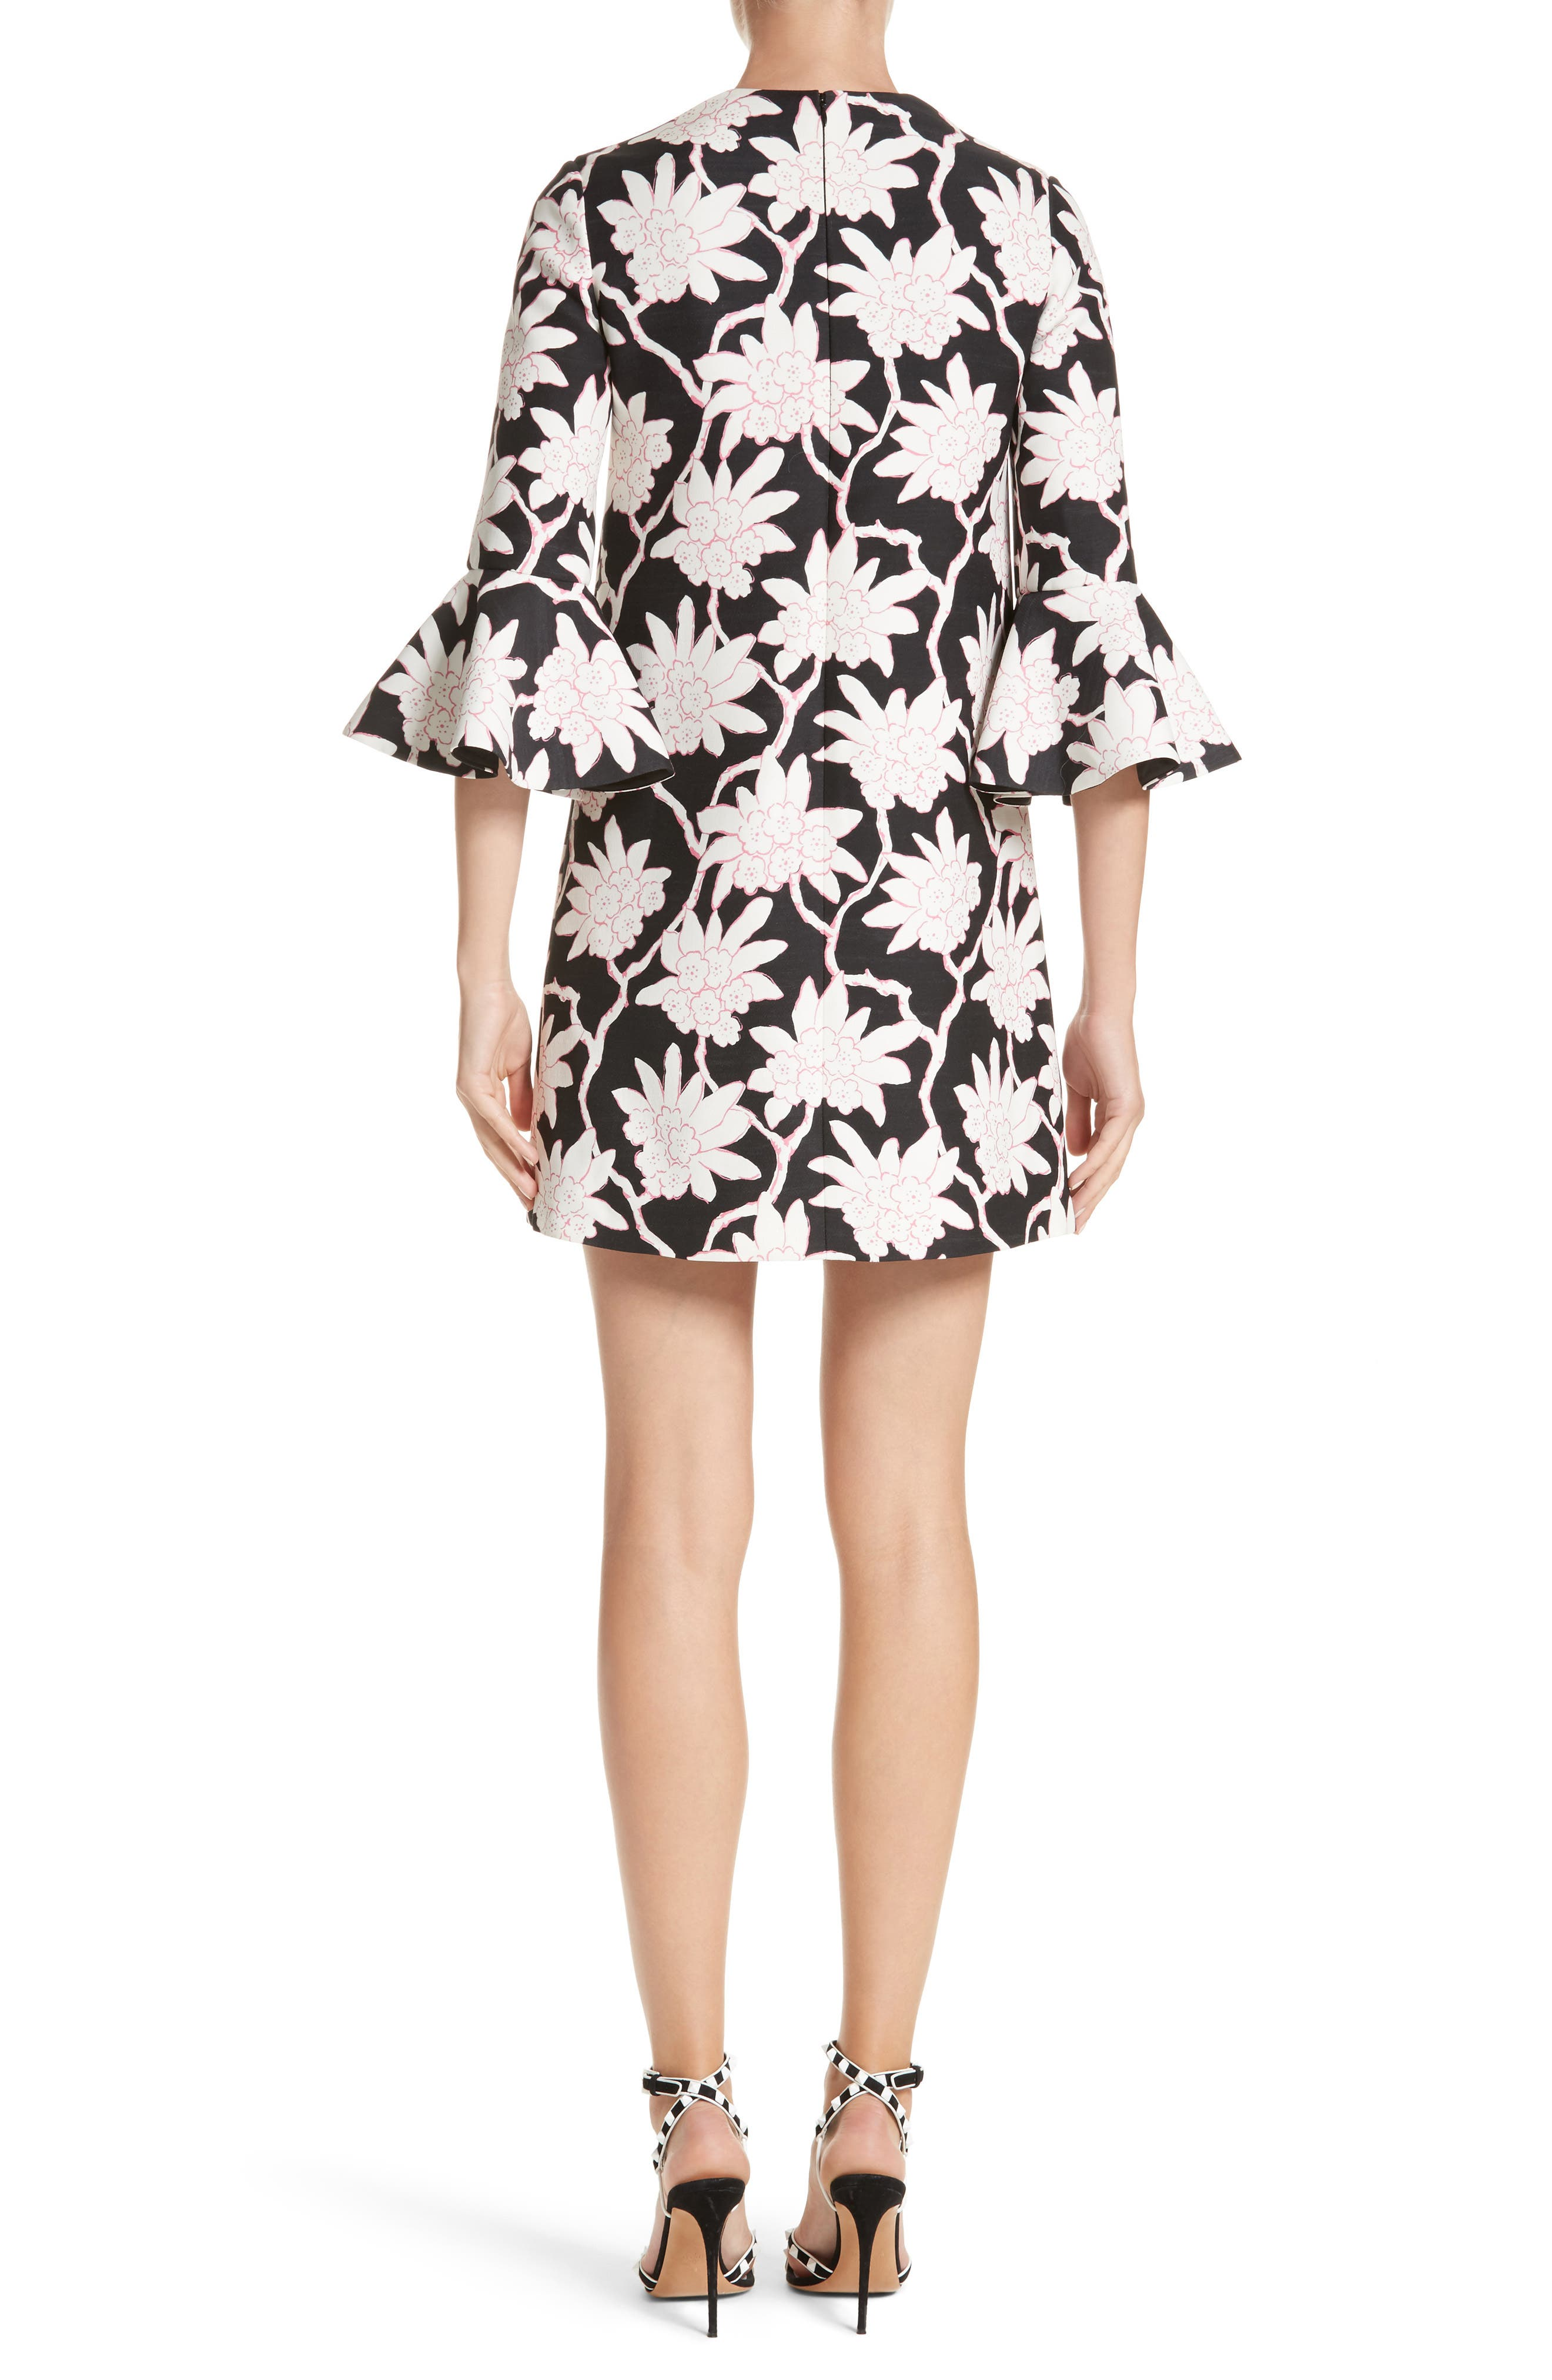 Rhododendron Print Wool & Silk Dress,                             Alternate thumbnail 2, color,                             Black